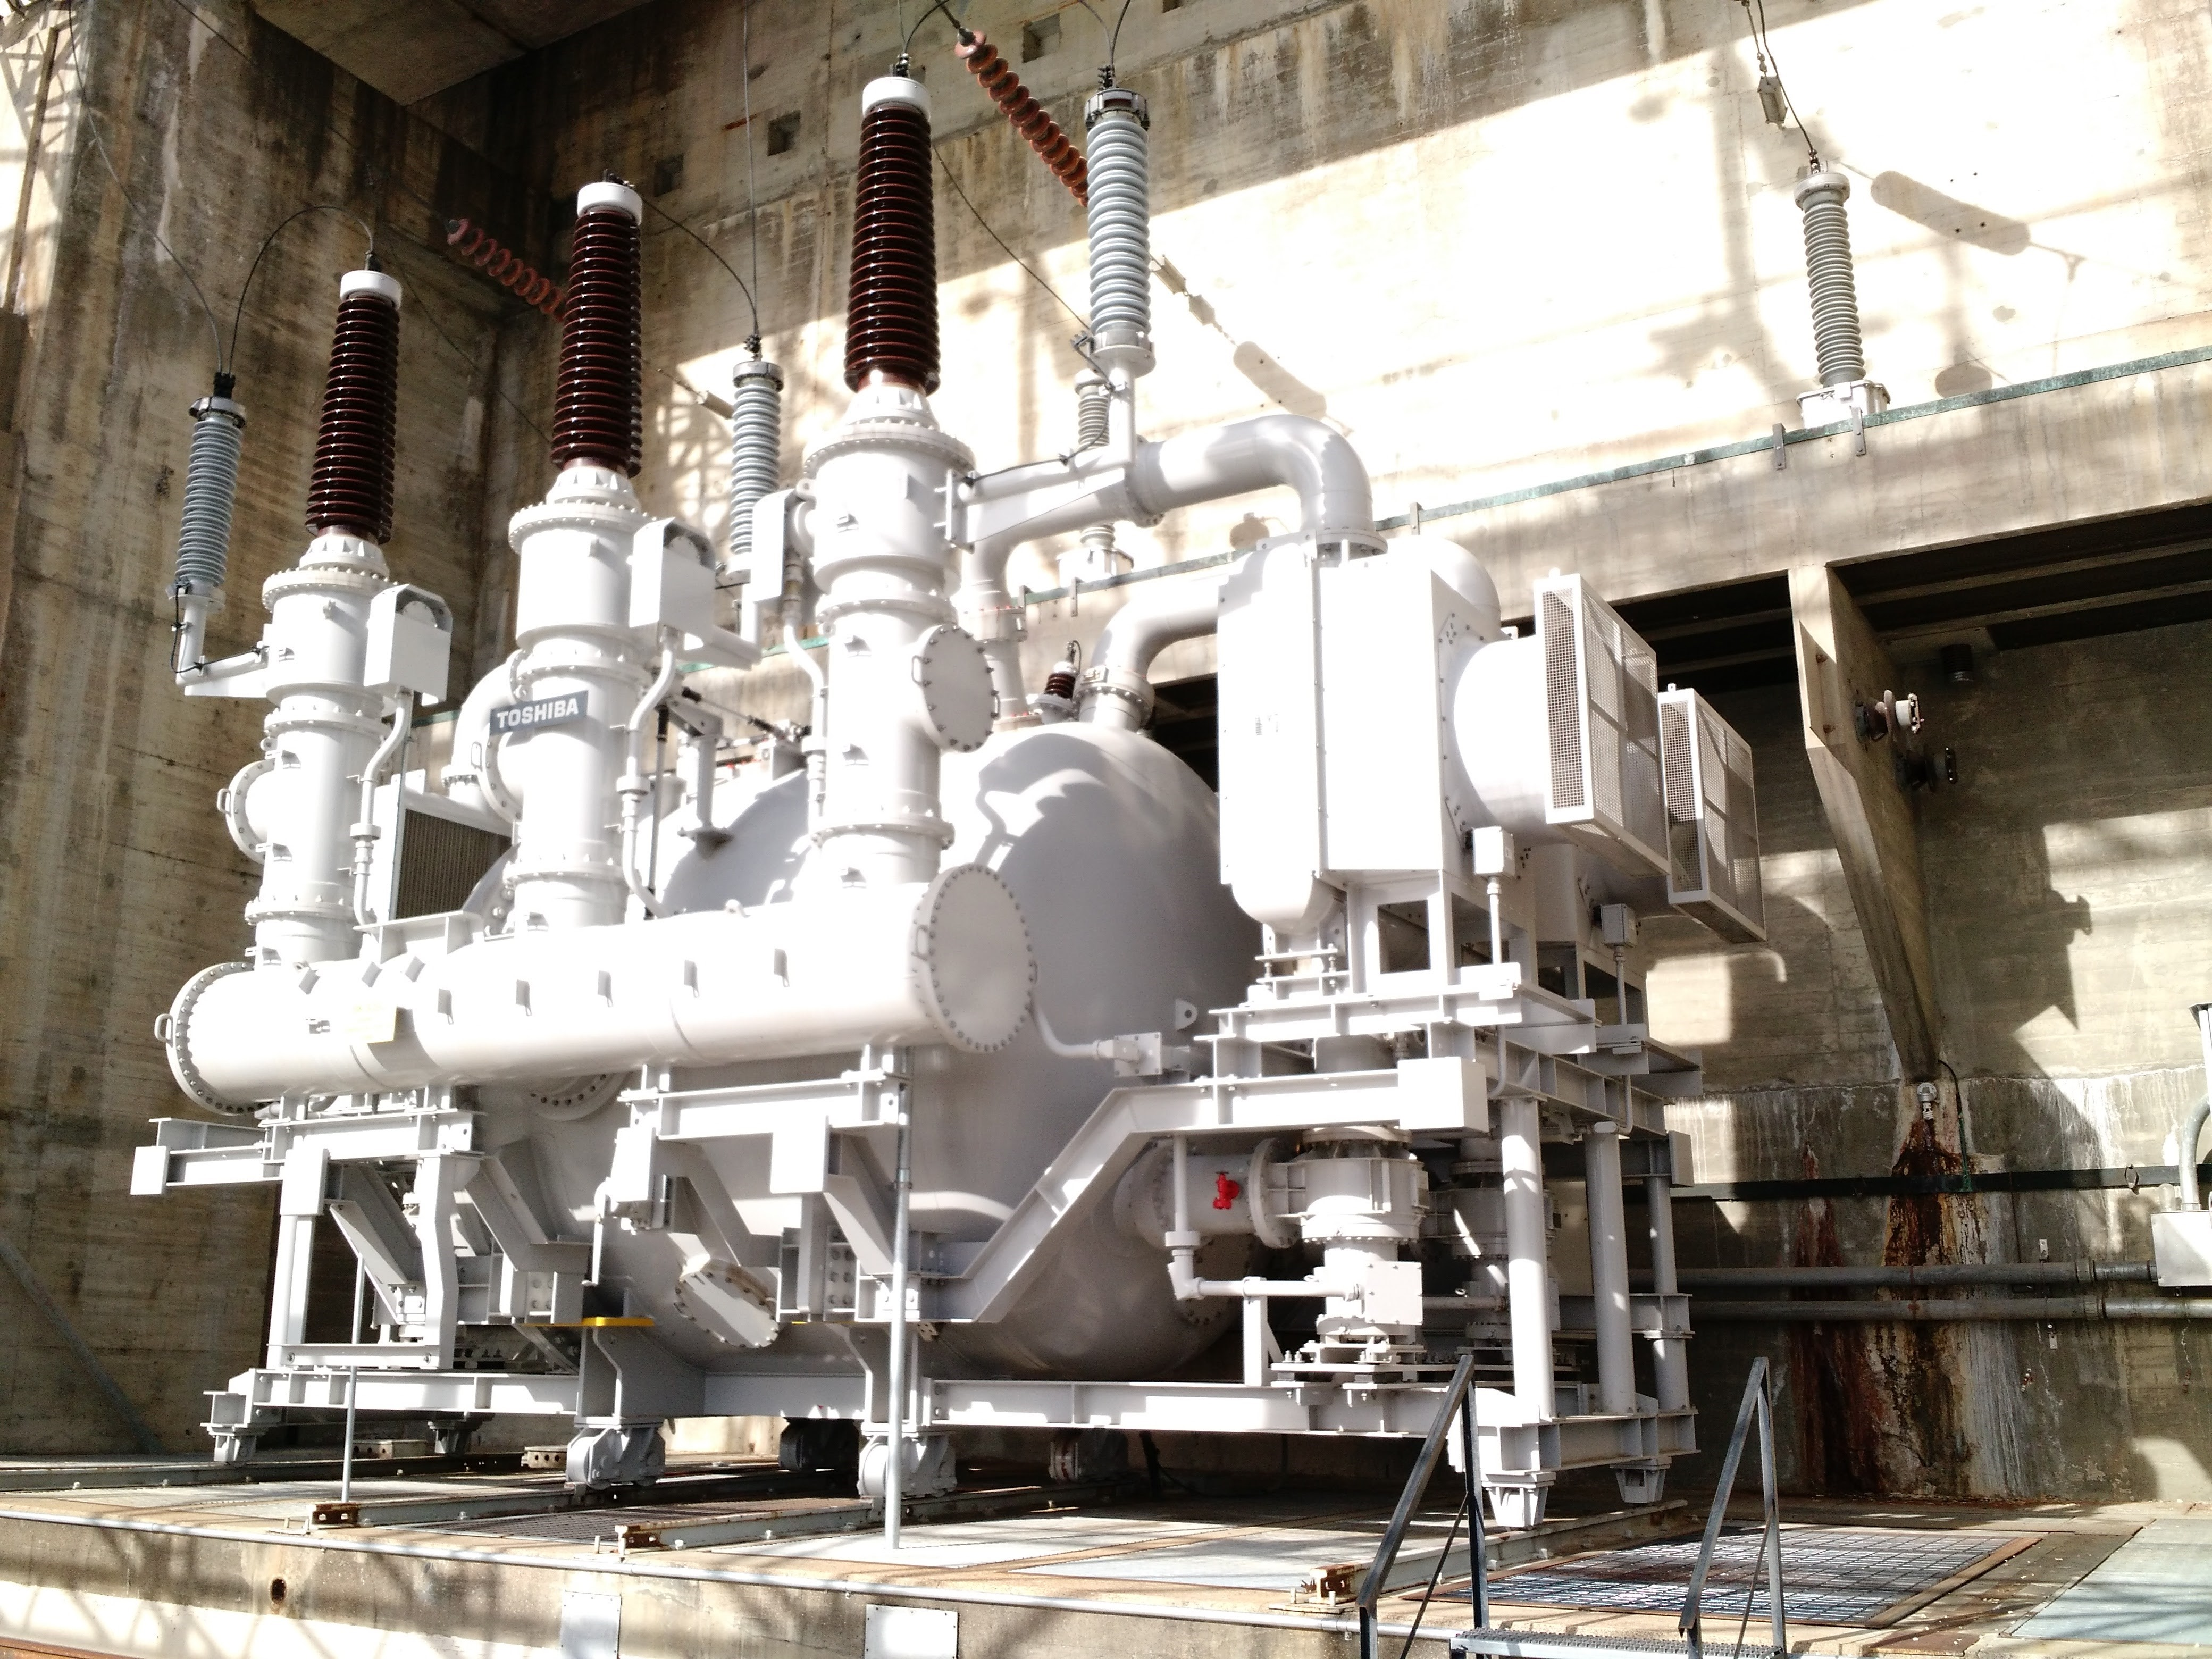 Gas insulated (SF6) power transformer at Osage Power Plant.